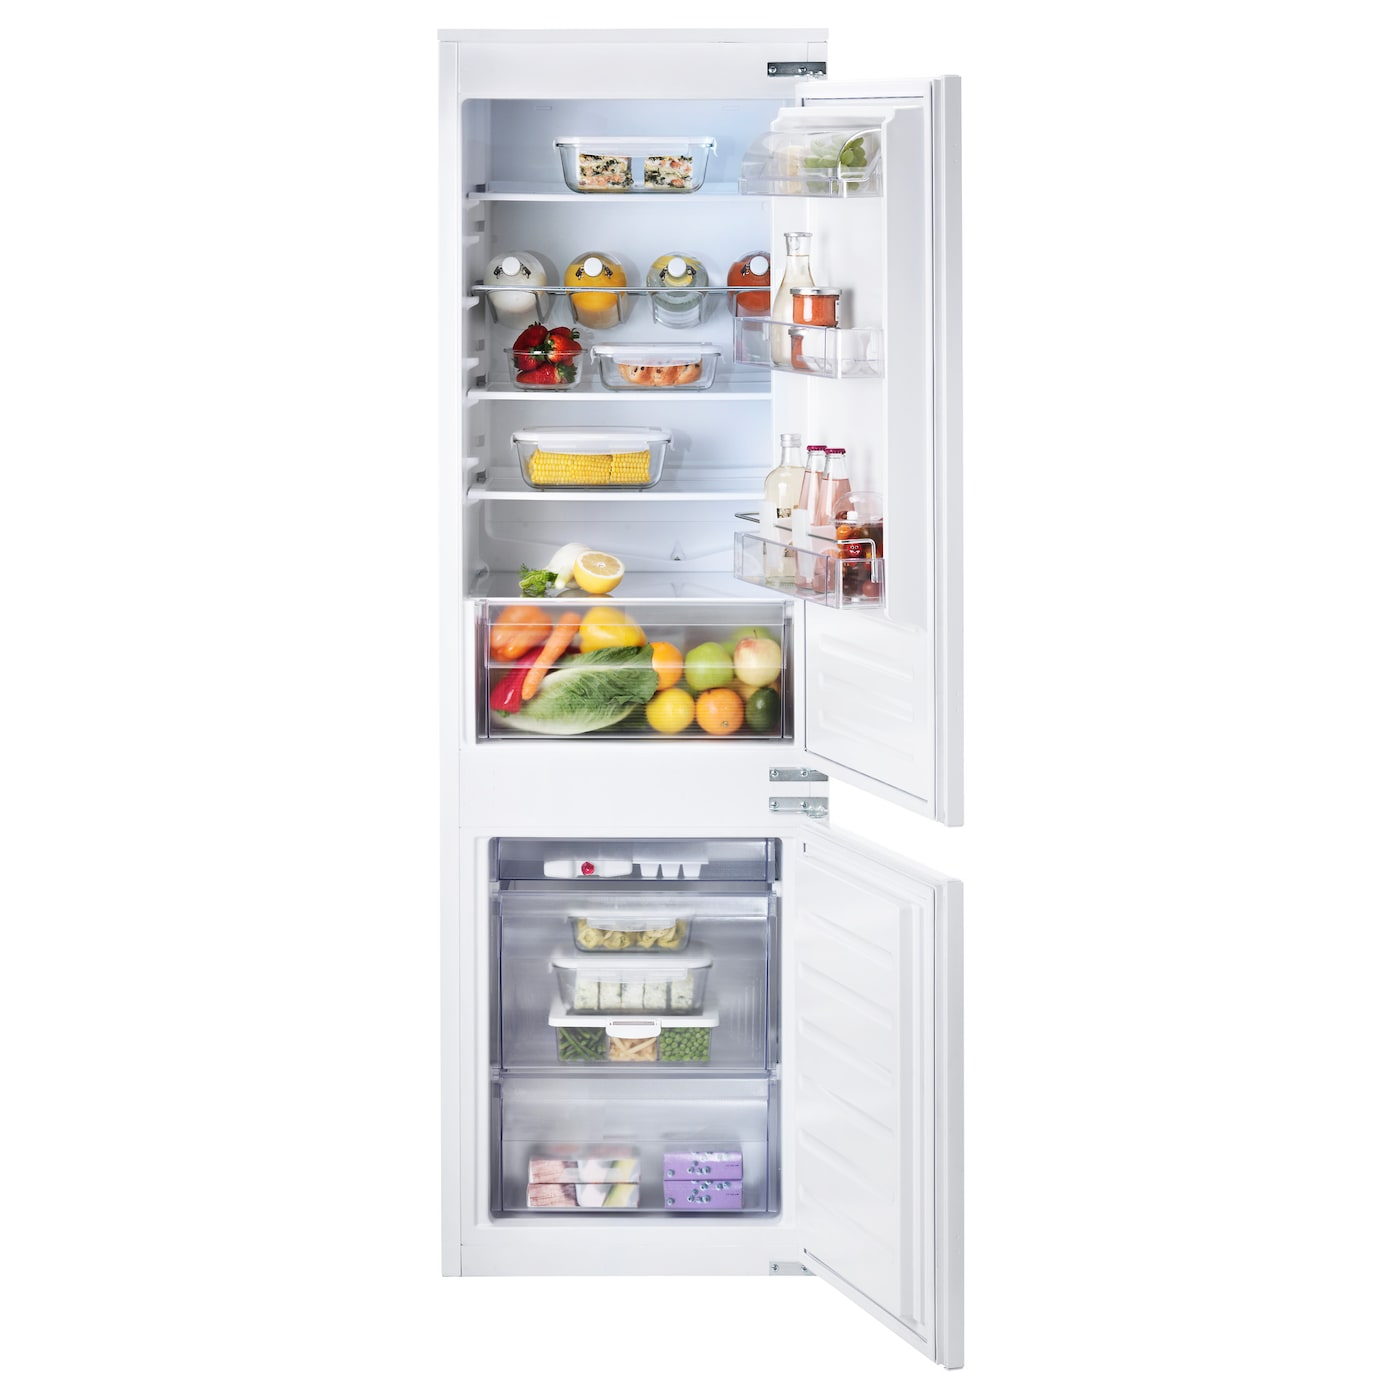 IKEA EFFEKTFULL integrated fridge/freezer A+